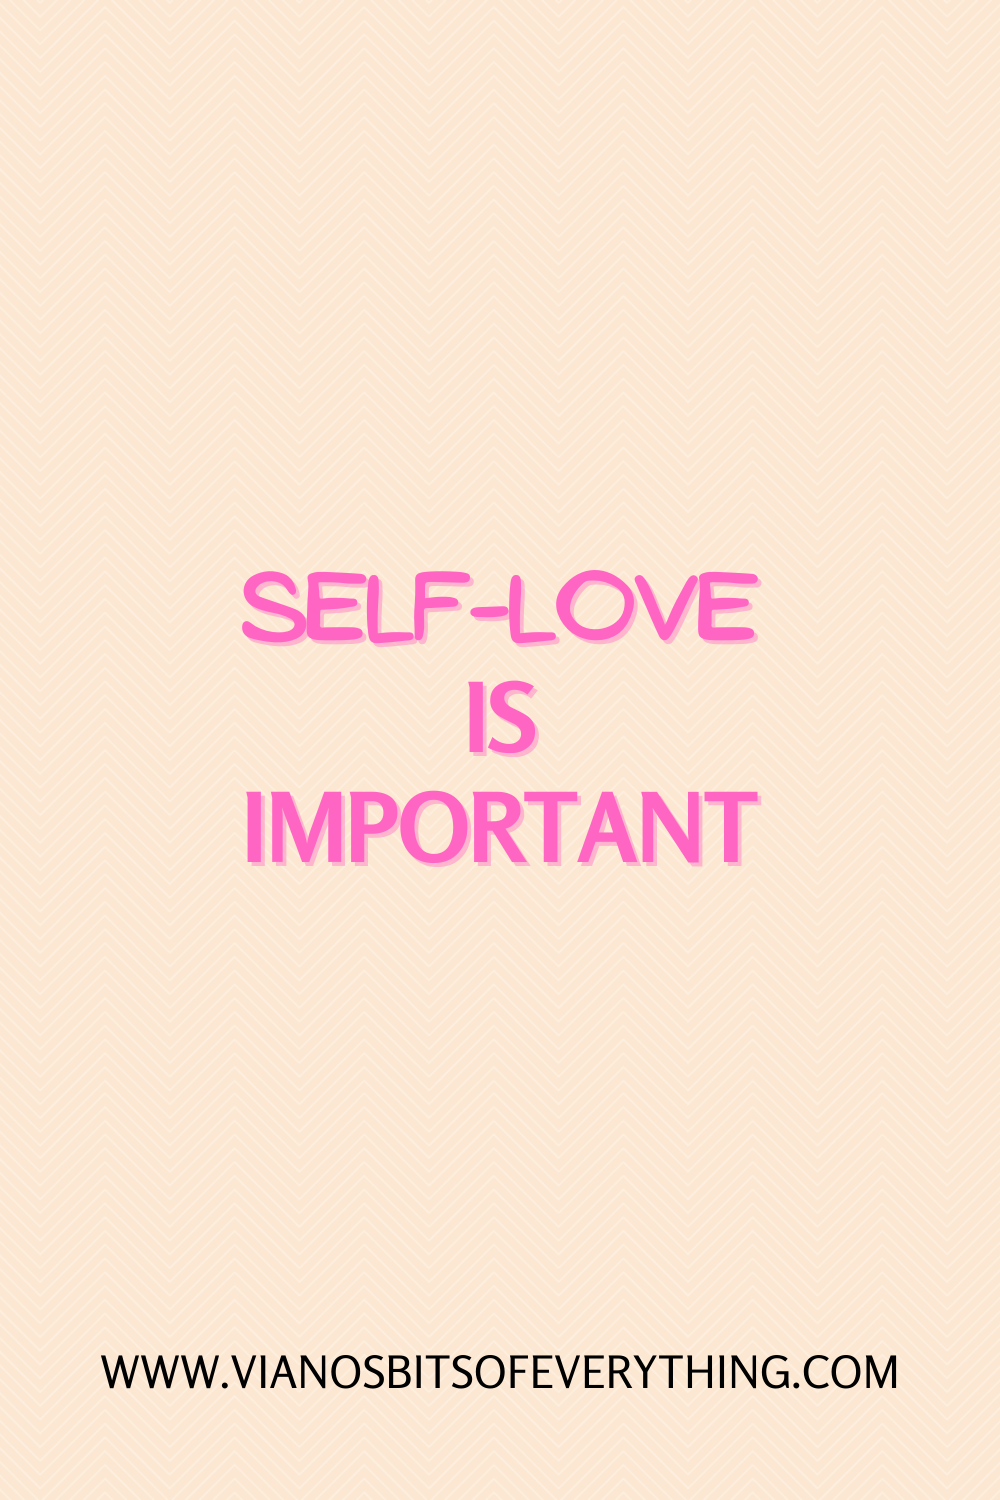 Self-love Is Important!